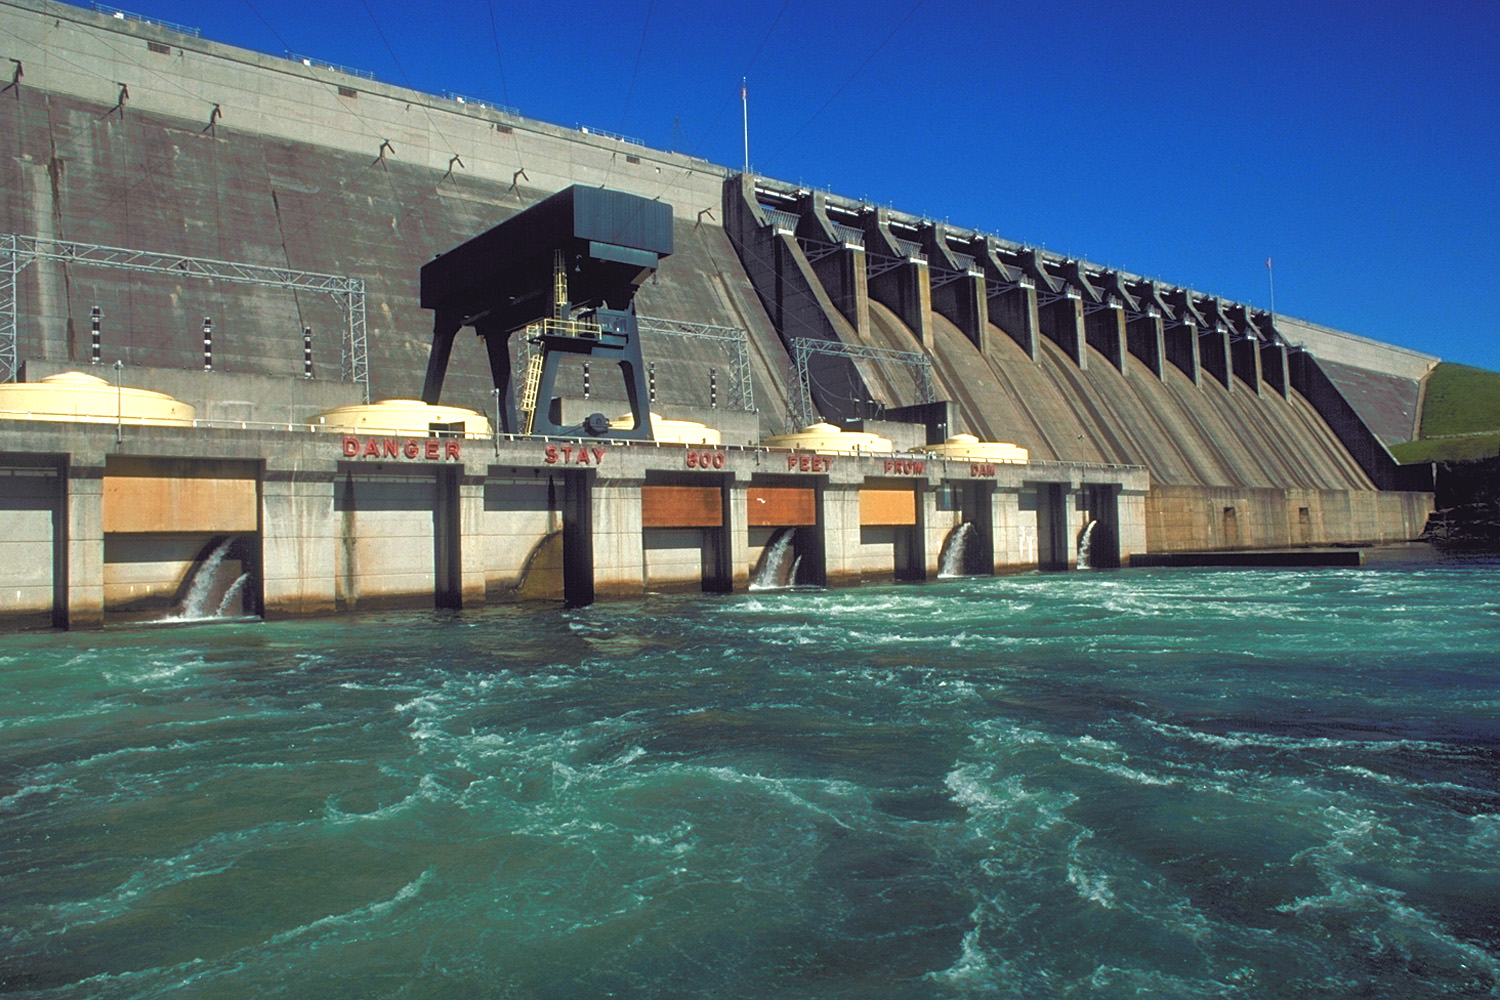 http://upload.wikimedia.org/wikipedia/commons/4/41/Hartwell_Dam_Savannah_River.jpg